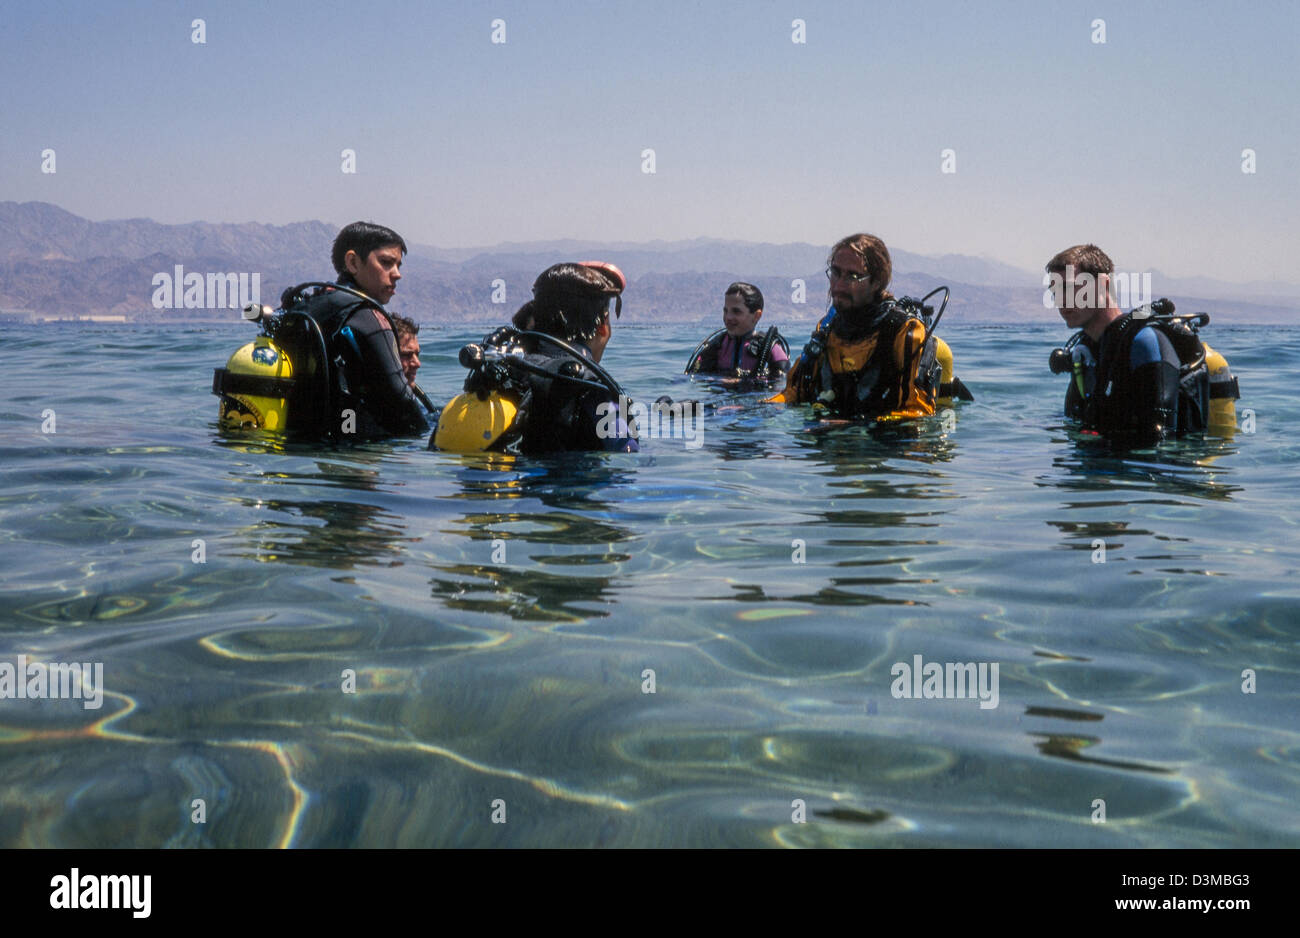 Beginners in diving instructed by the teacher. - Stock Image